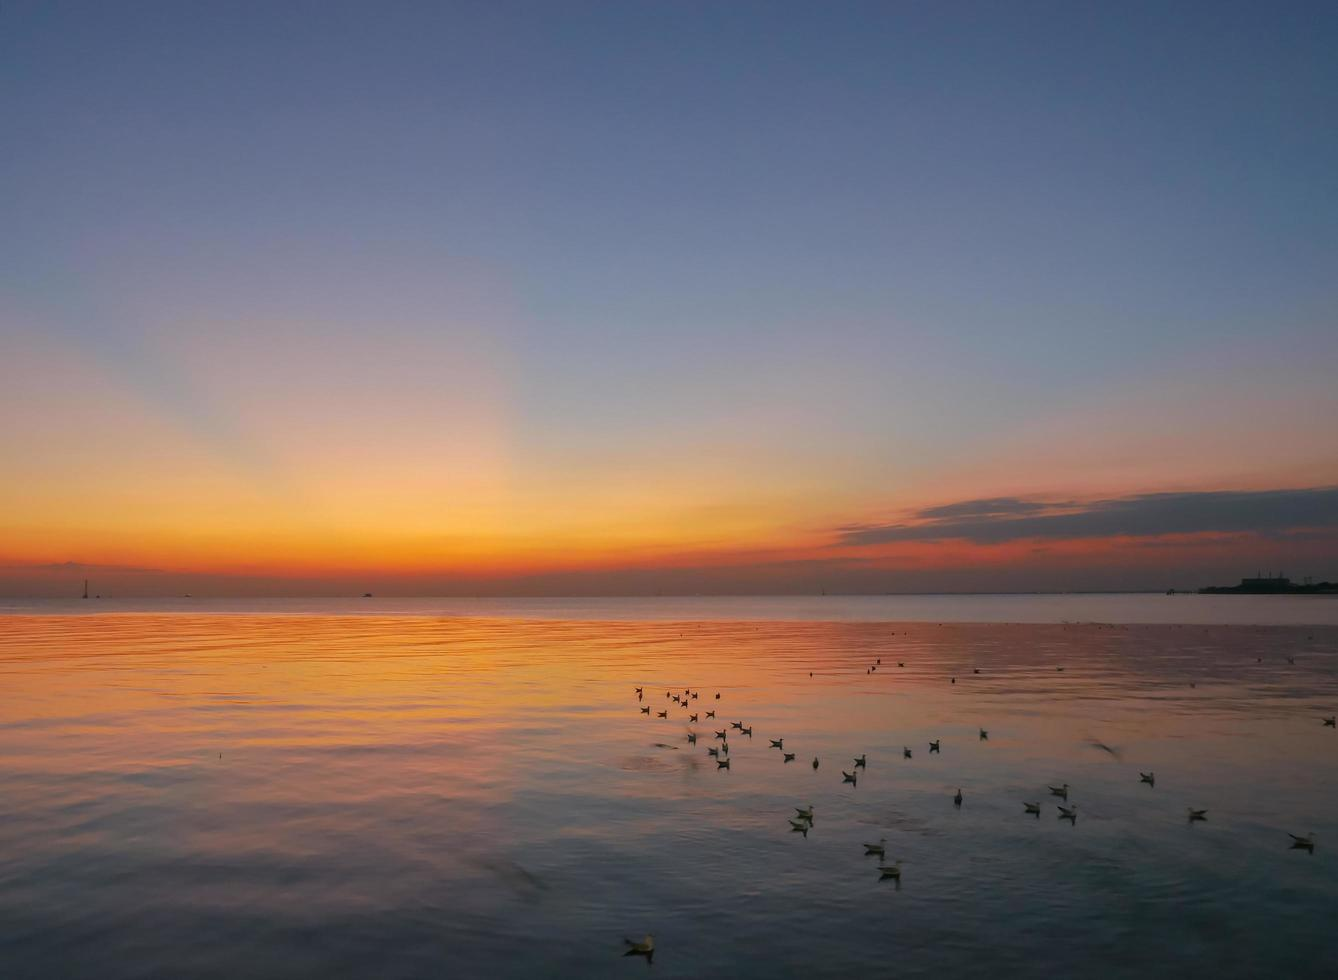 Seagulls wading in ocean during sunset photo